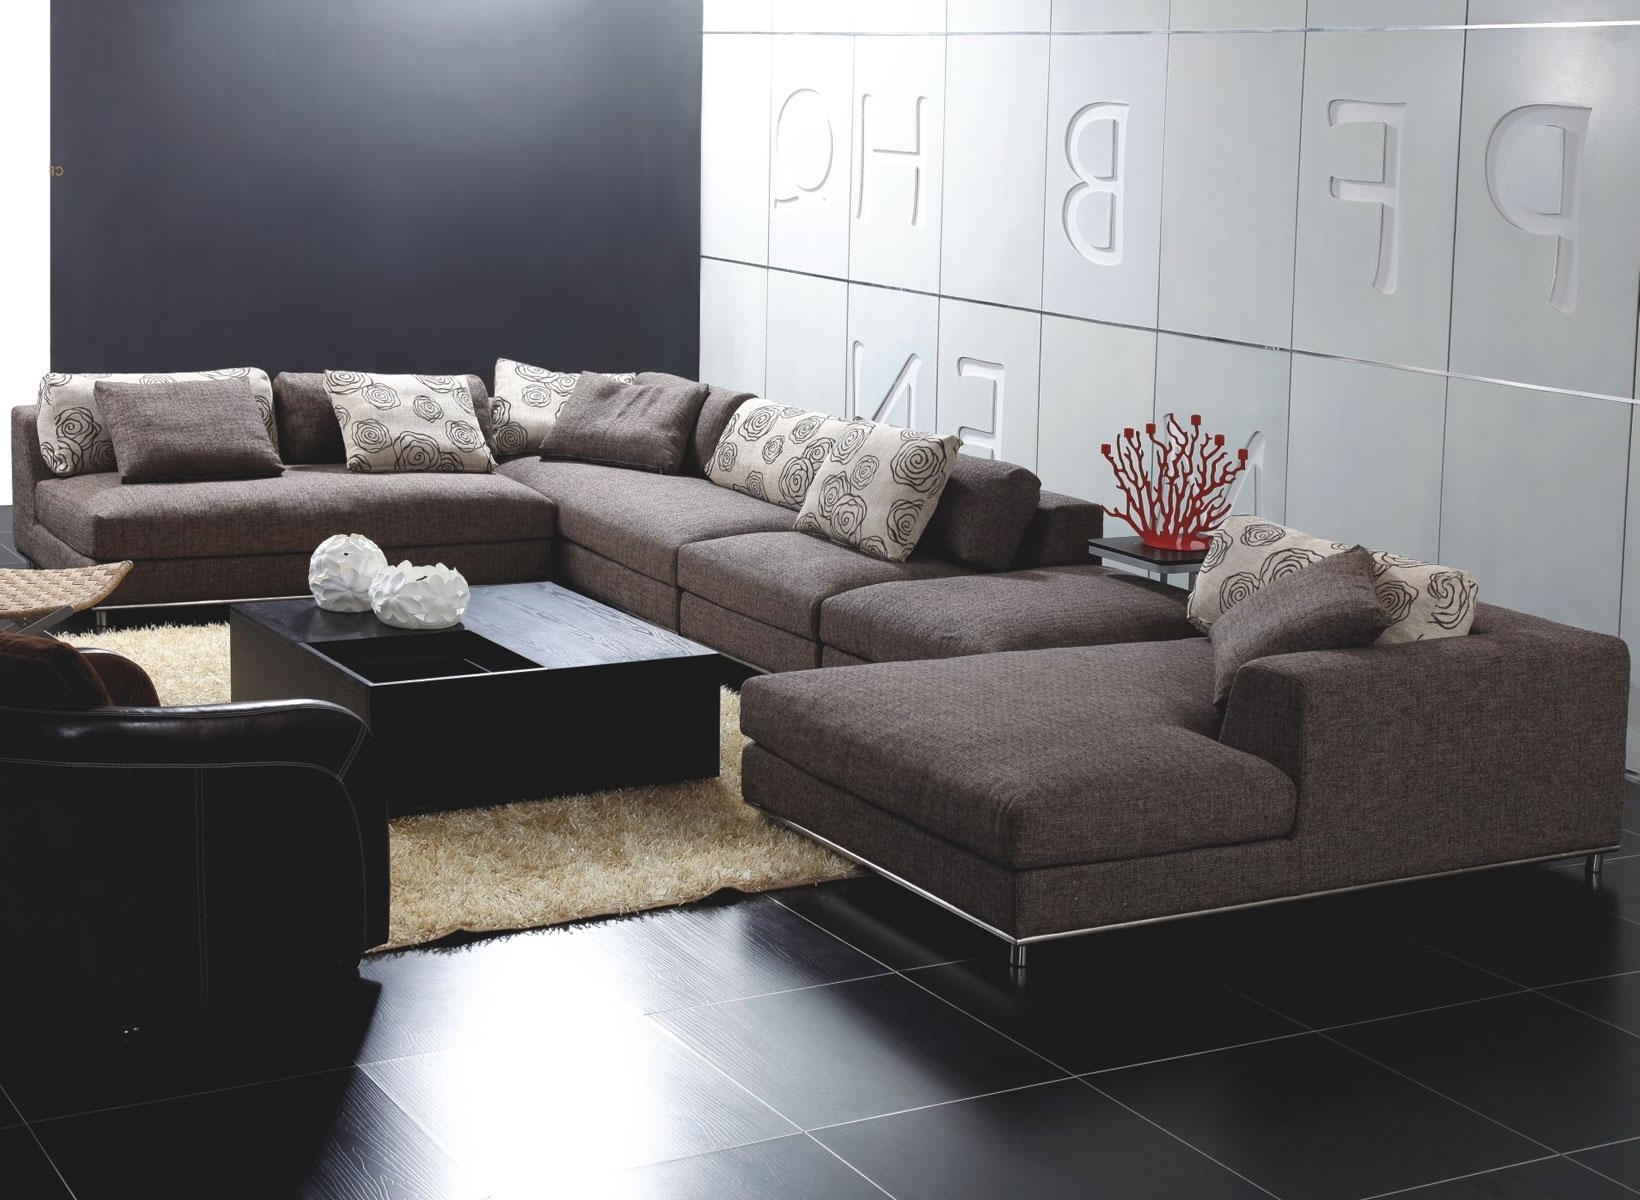 Stunning Modern Sectional Sofas With Chaise On Leather Reclining Regarding Fashionable Unique Sectional Sofas (View 10 of 20)